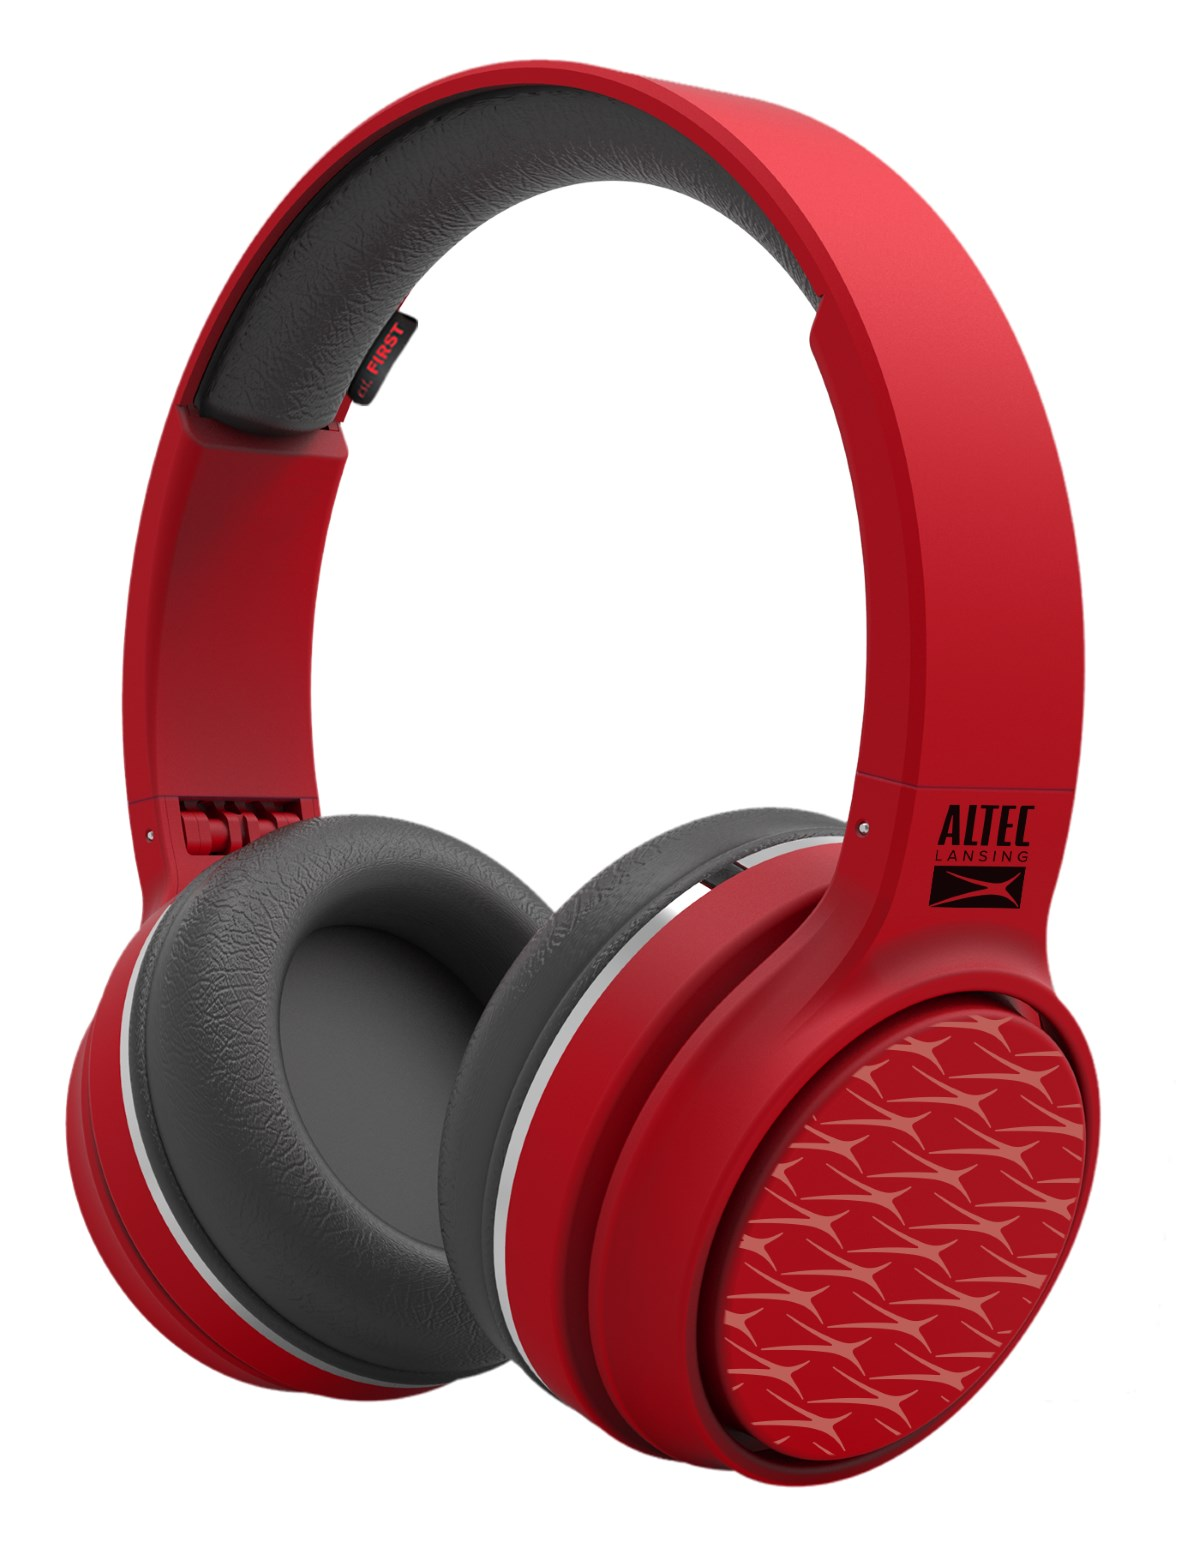 ALTEC LANSING bluetooth headphones Ring 'n' Go play & party, κόκκινα - ALTEC 21744